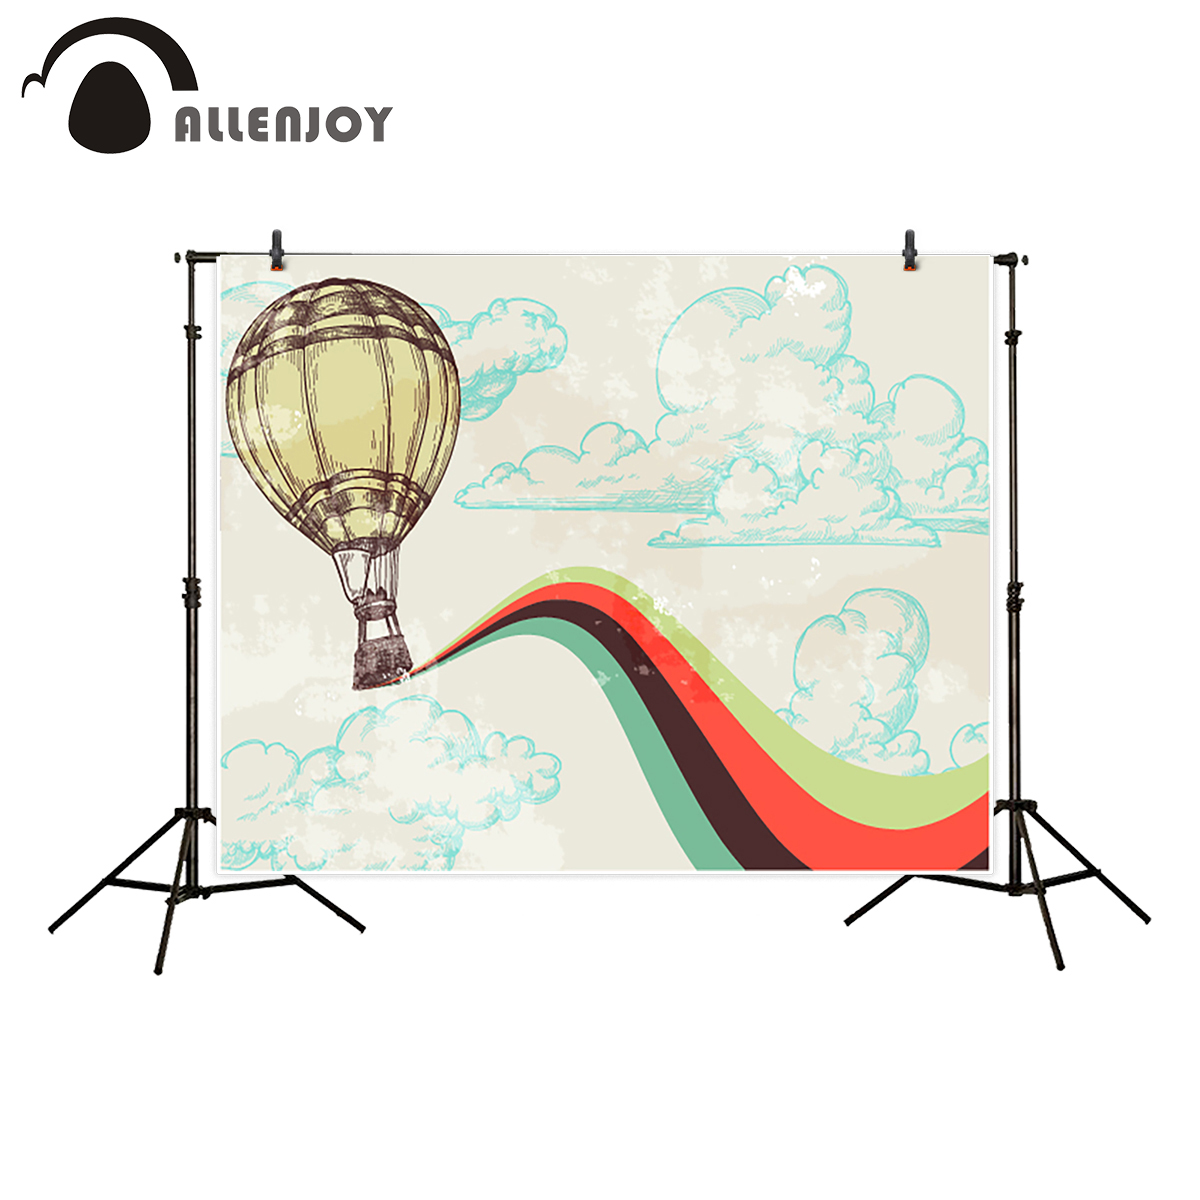 Allenjoy photography backdrop hot air balloon travel cloud rainbow background photo studio customize photocall photo prop allenjoy photography background lovely clouds cotton hearts stars rainbow backdrop photo studio camera fotografica